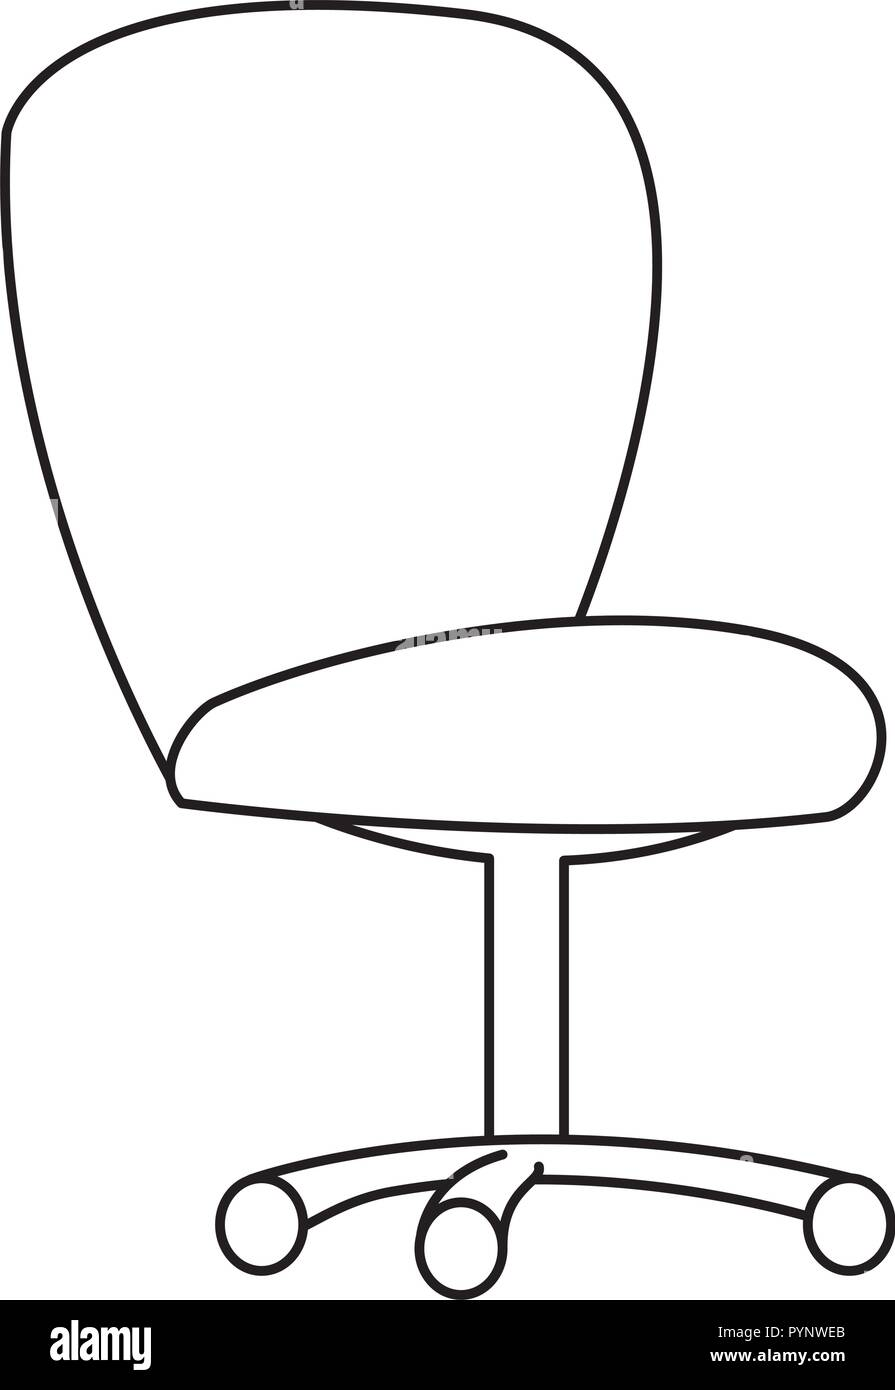 office chair isolated icon vector illustration design - Stock Image